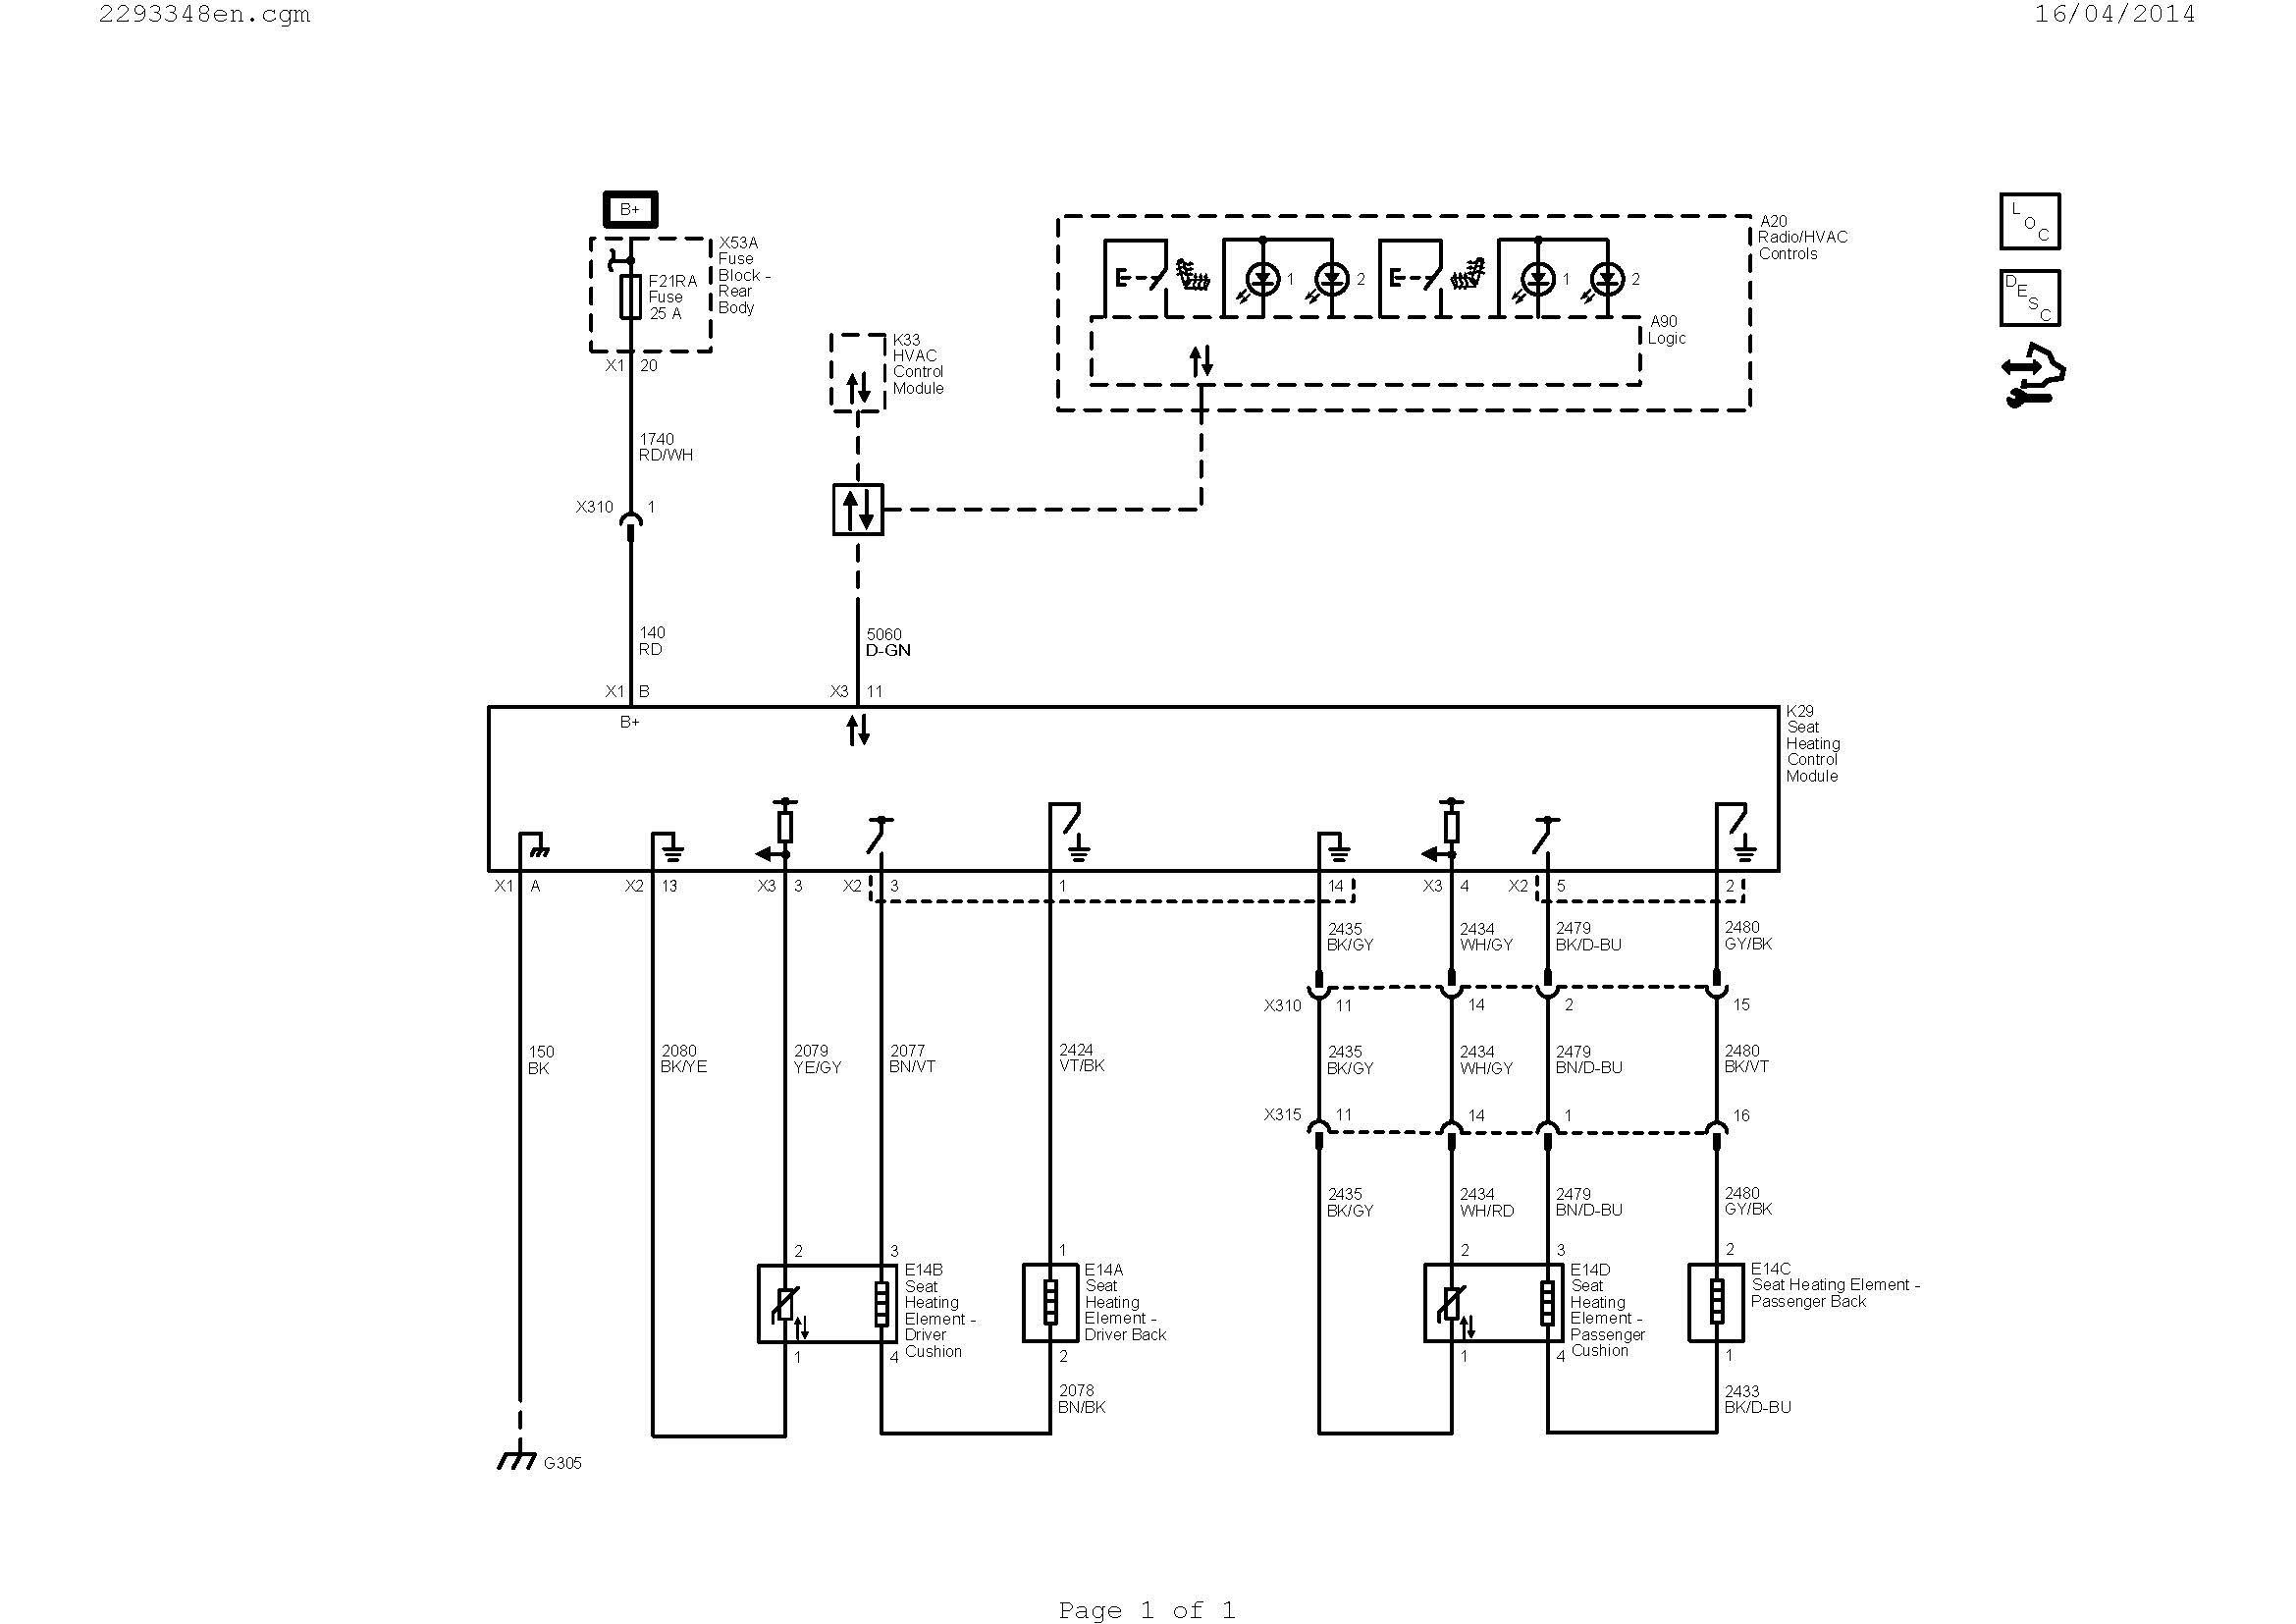 lub12 wiring diagram Download-on on on switch wiring diagram Download Wiring Diagram For A Relay Switch Save Wiring DOWNLOAD Wiring Diagram 1-e